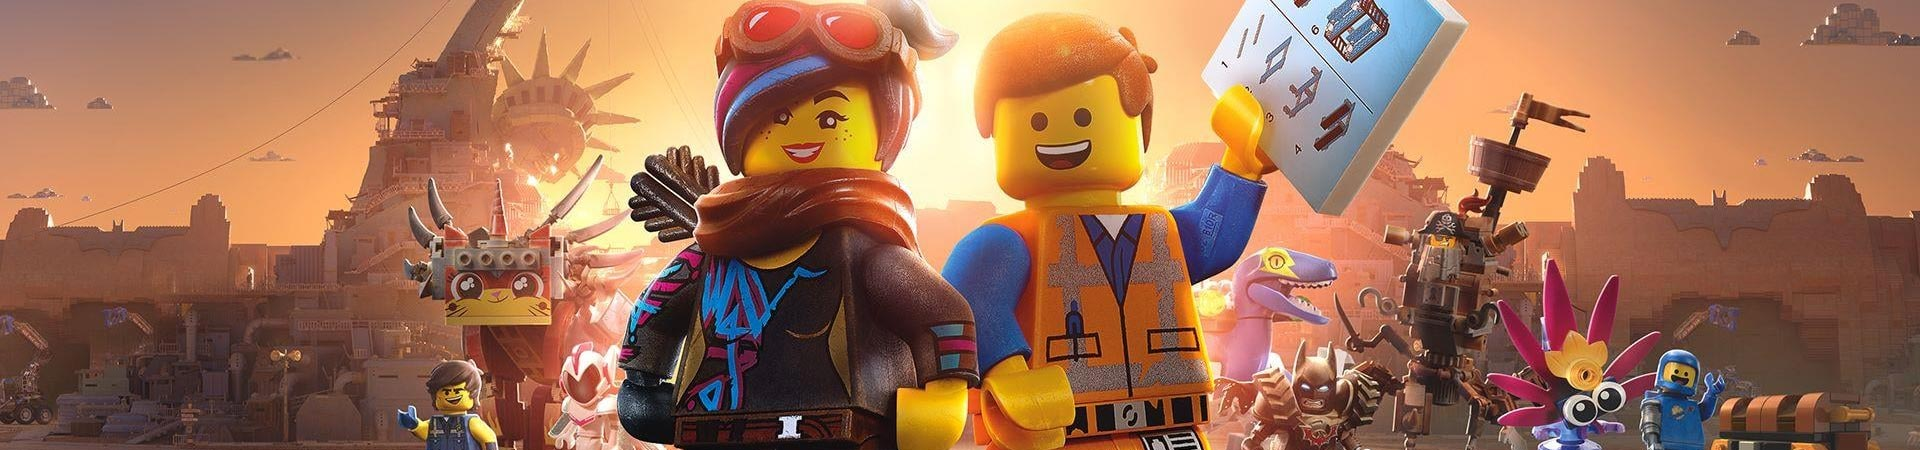 MainSlider-LEGOMovie2